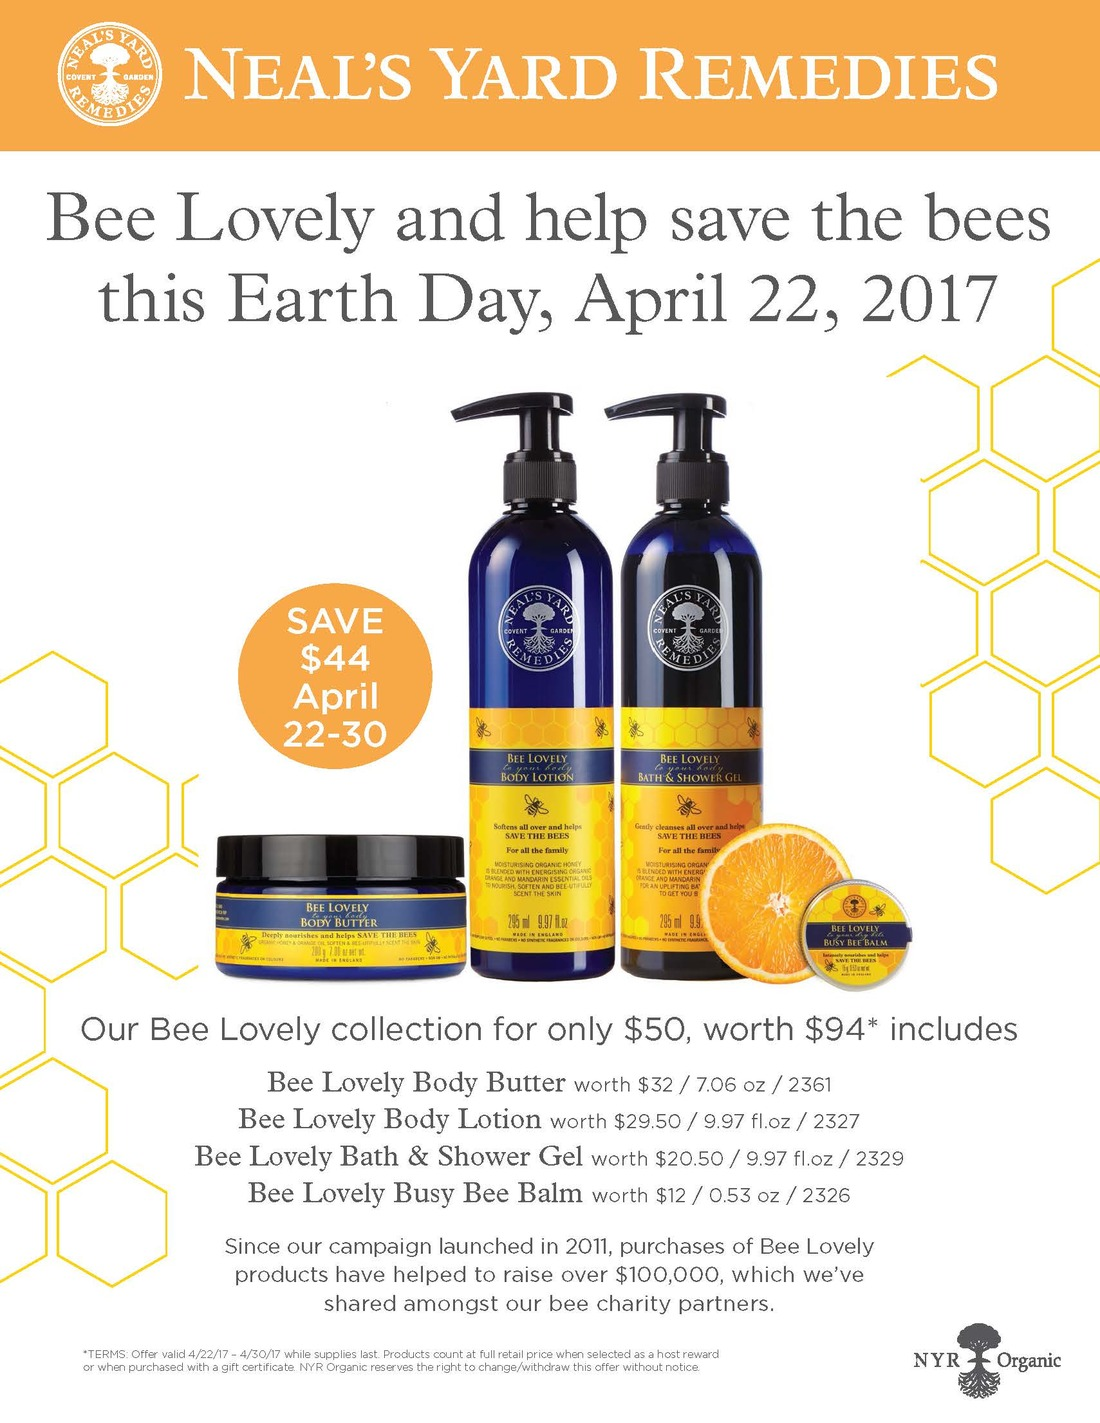 bee bee lovely sale one of my favorite neal s yard remedies product lines